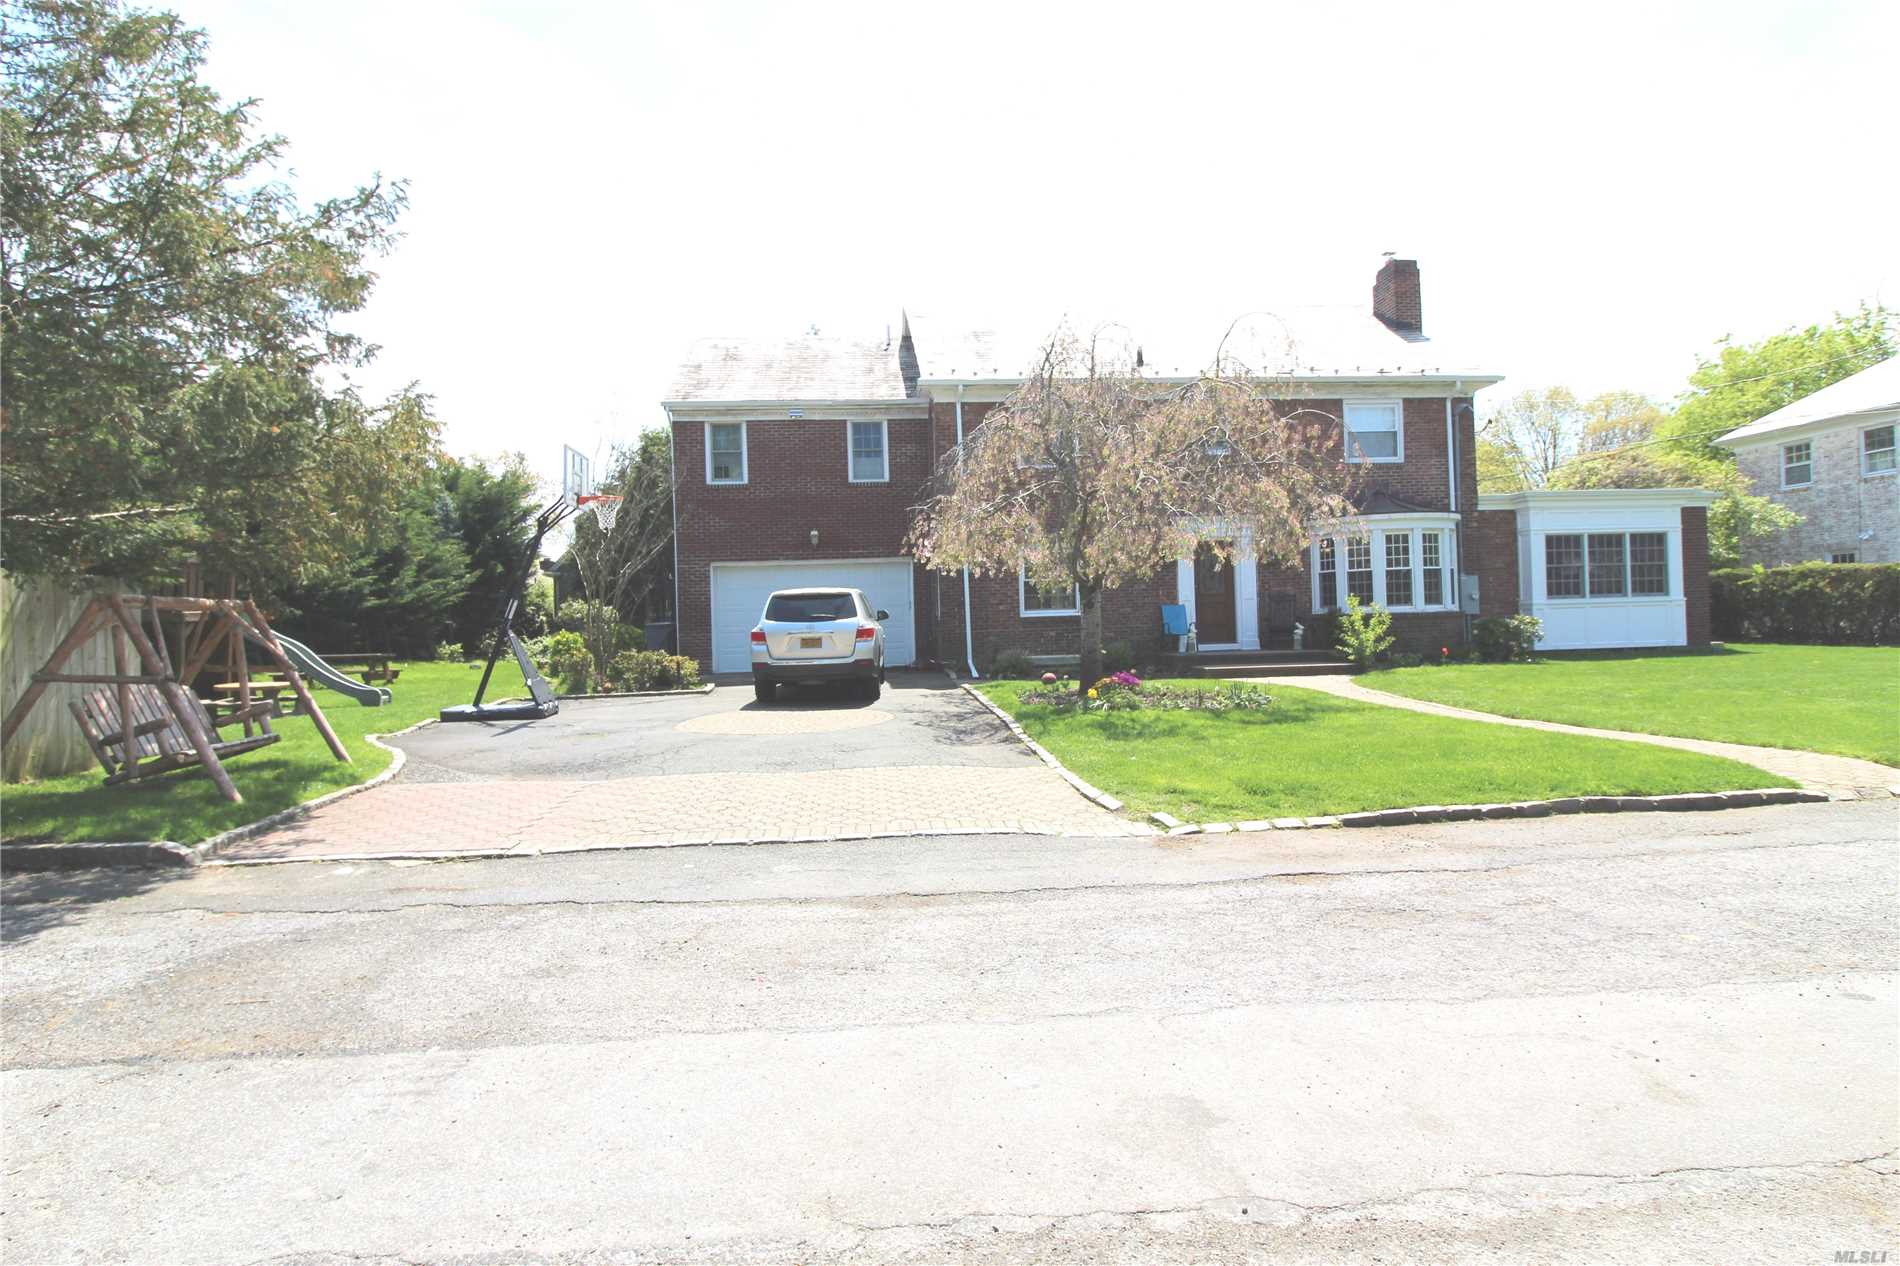 Beautiful spacious center hall colonial w/wood floors, Kosher Granite EIK, master bdrm suite on 1st and 2nd floors, large finished basement. can be rented unfurnished or with some furnishings (beds and miscellaneous furniture items).